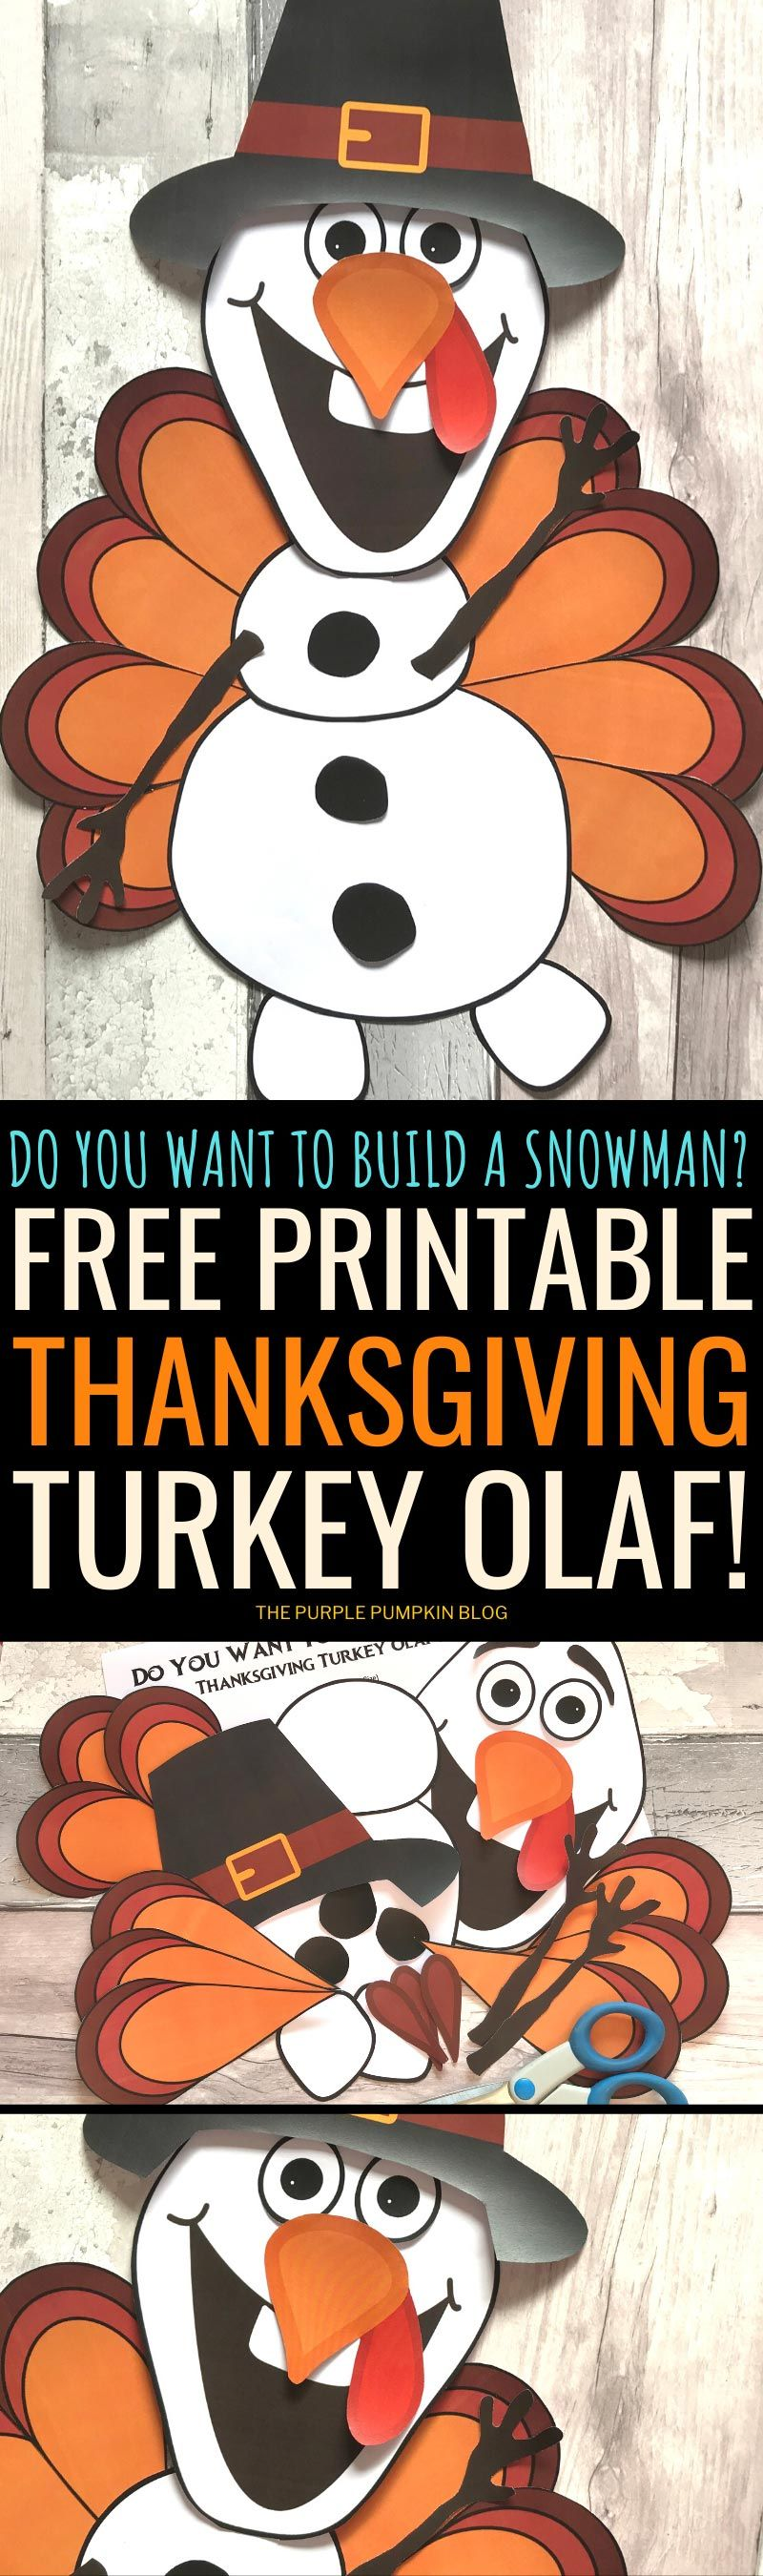 Do You Want To Build A Snowman? Thanksgiving Turkey Olaf Edition!